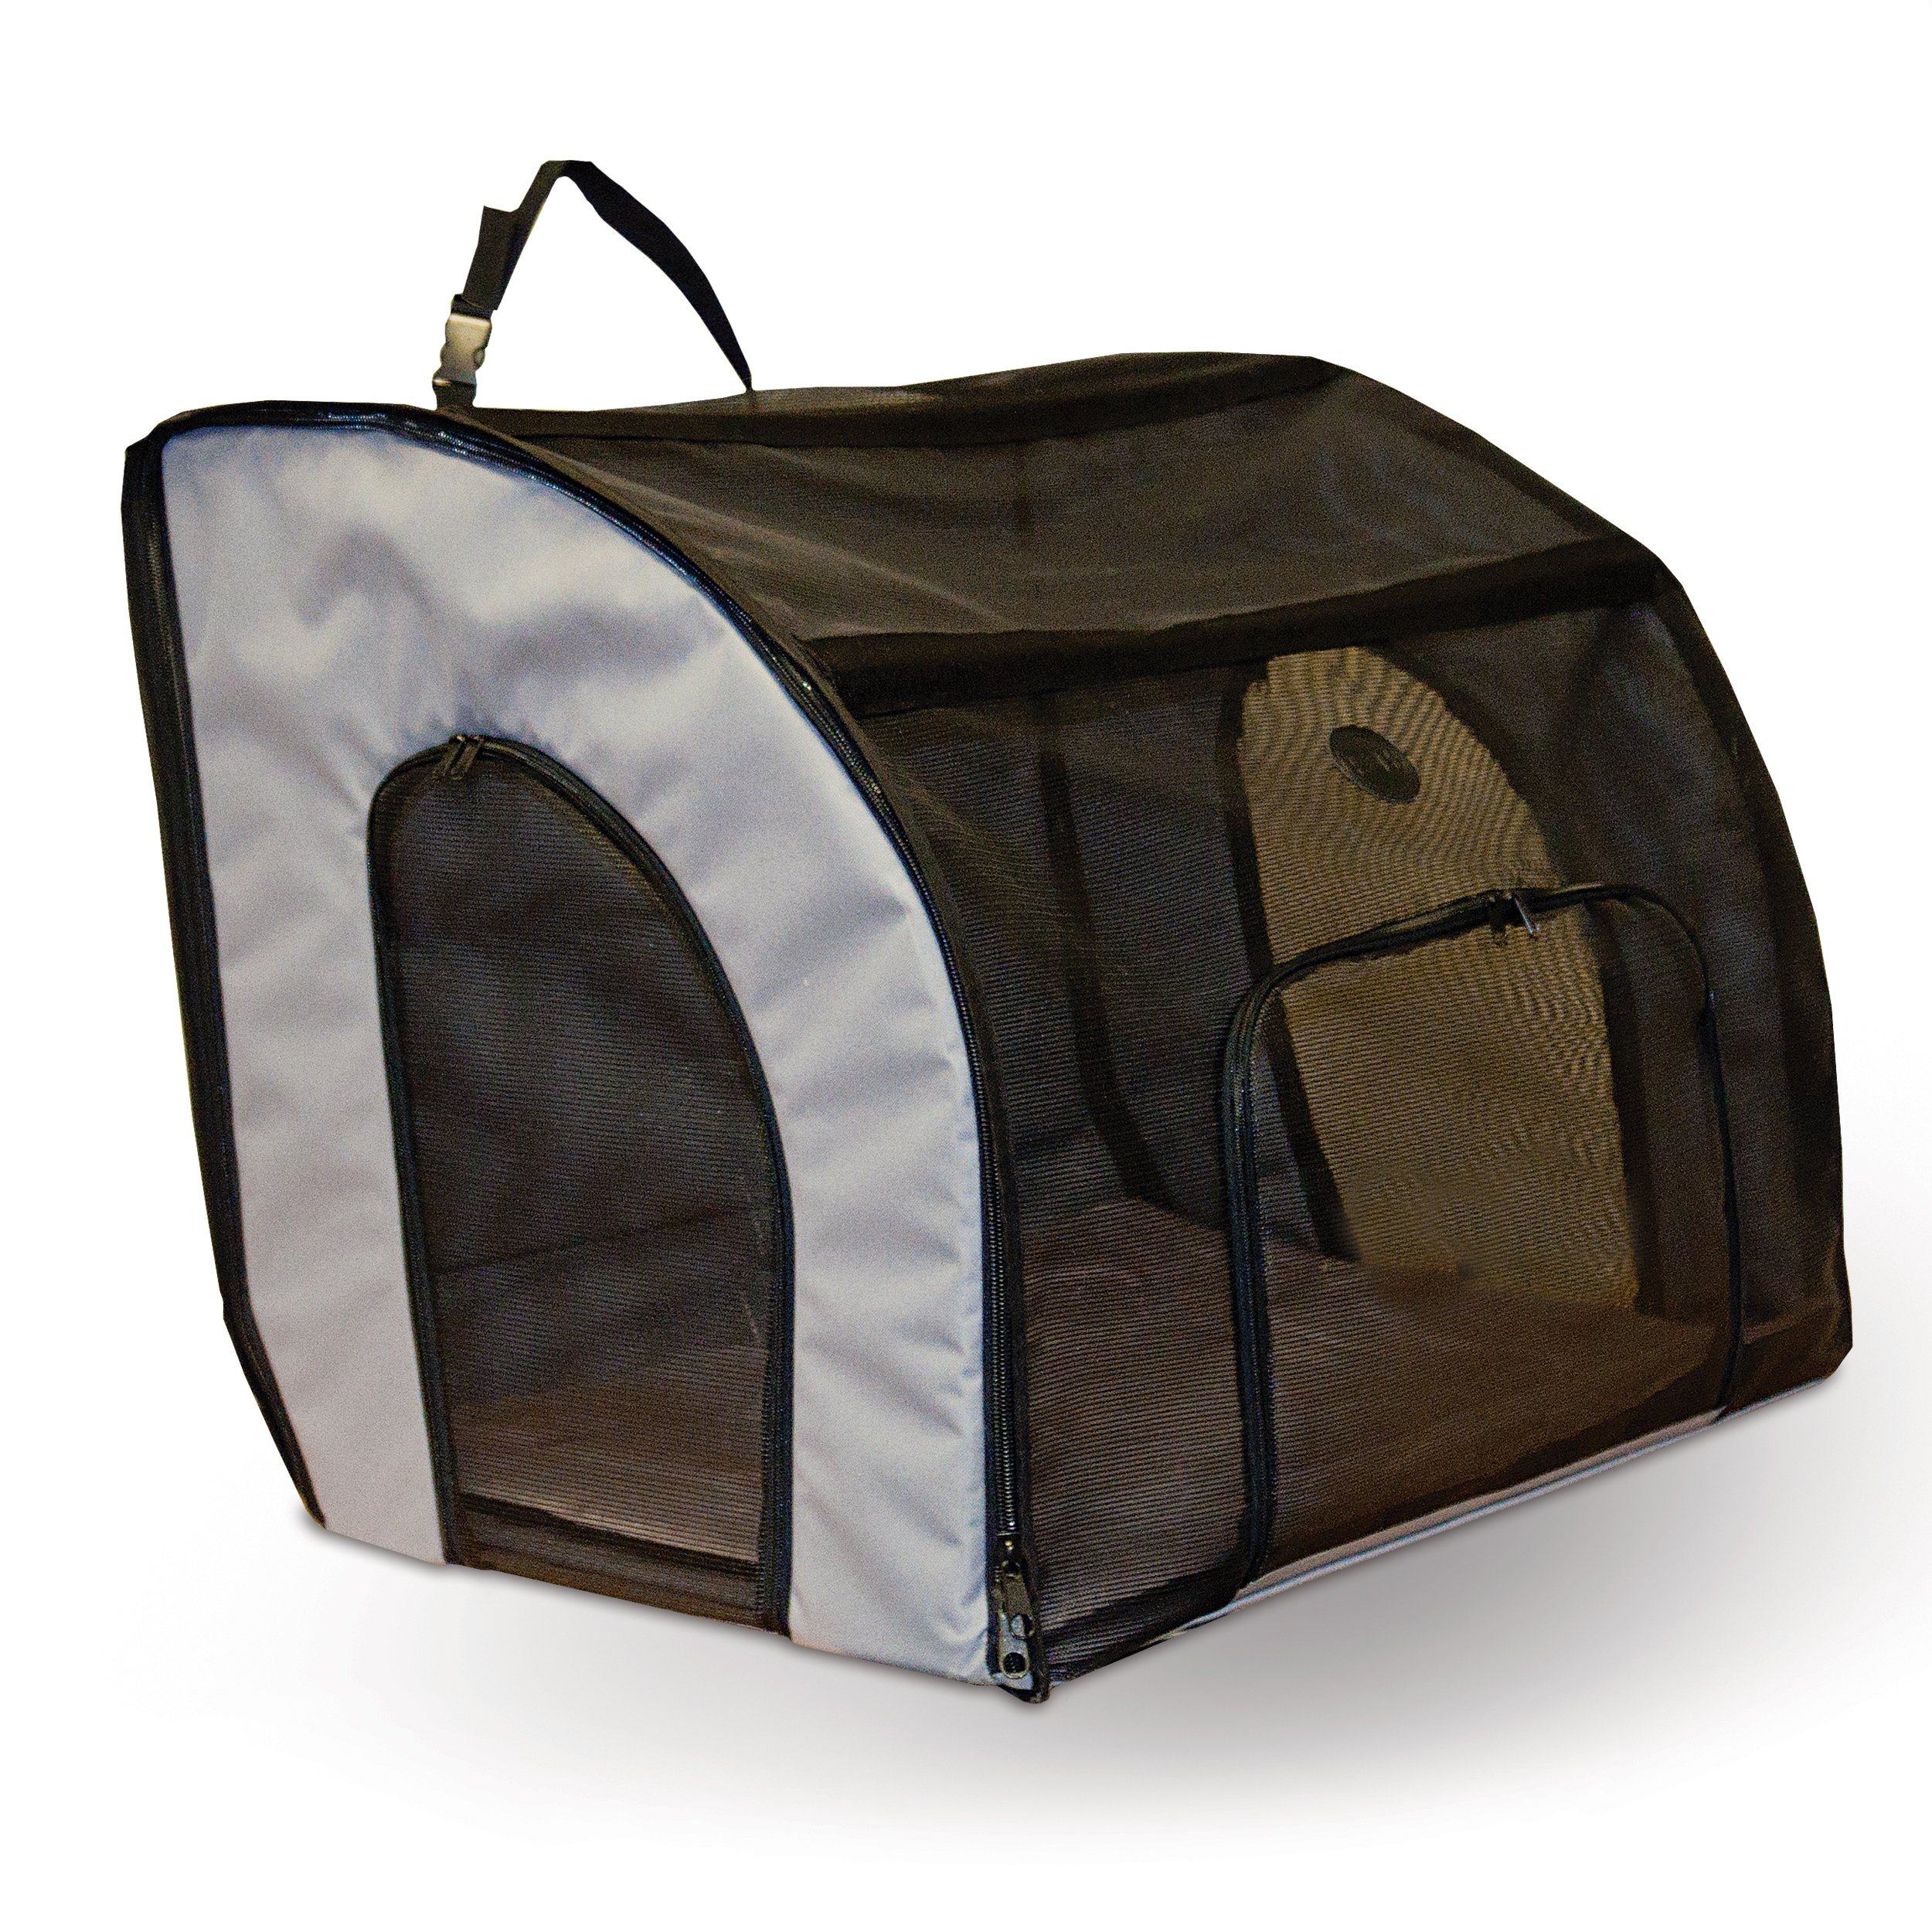 K&H Pet Products Travel Safety Pet Carrier Large Gray 29.5'' x 22'' x 25.5''